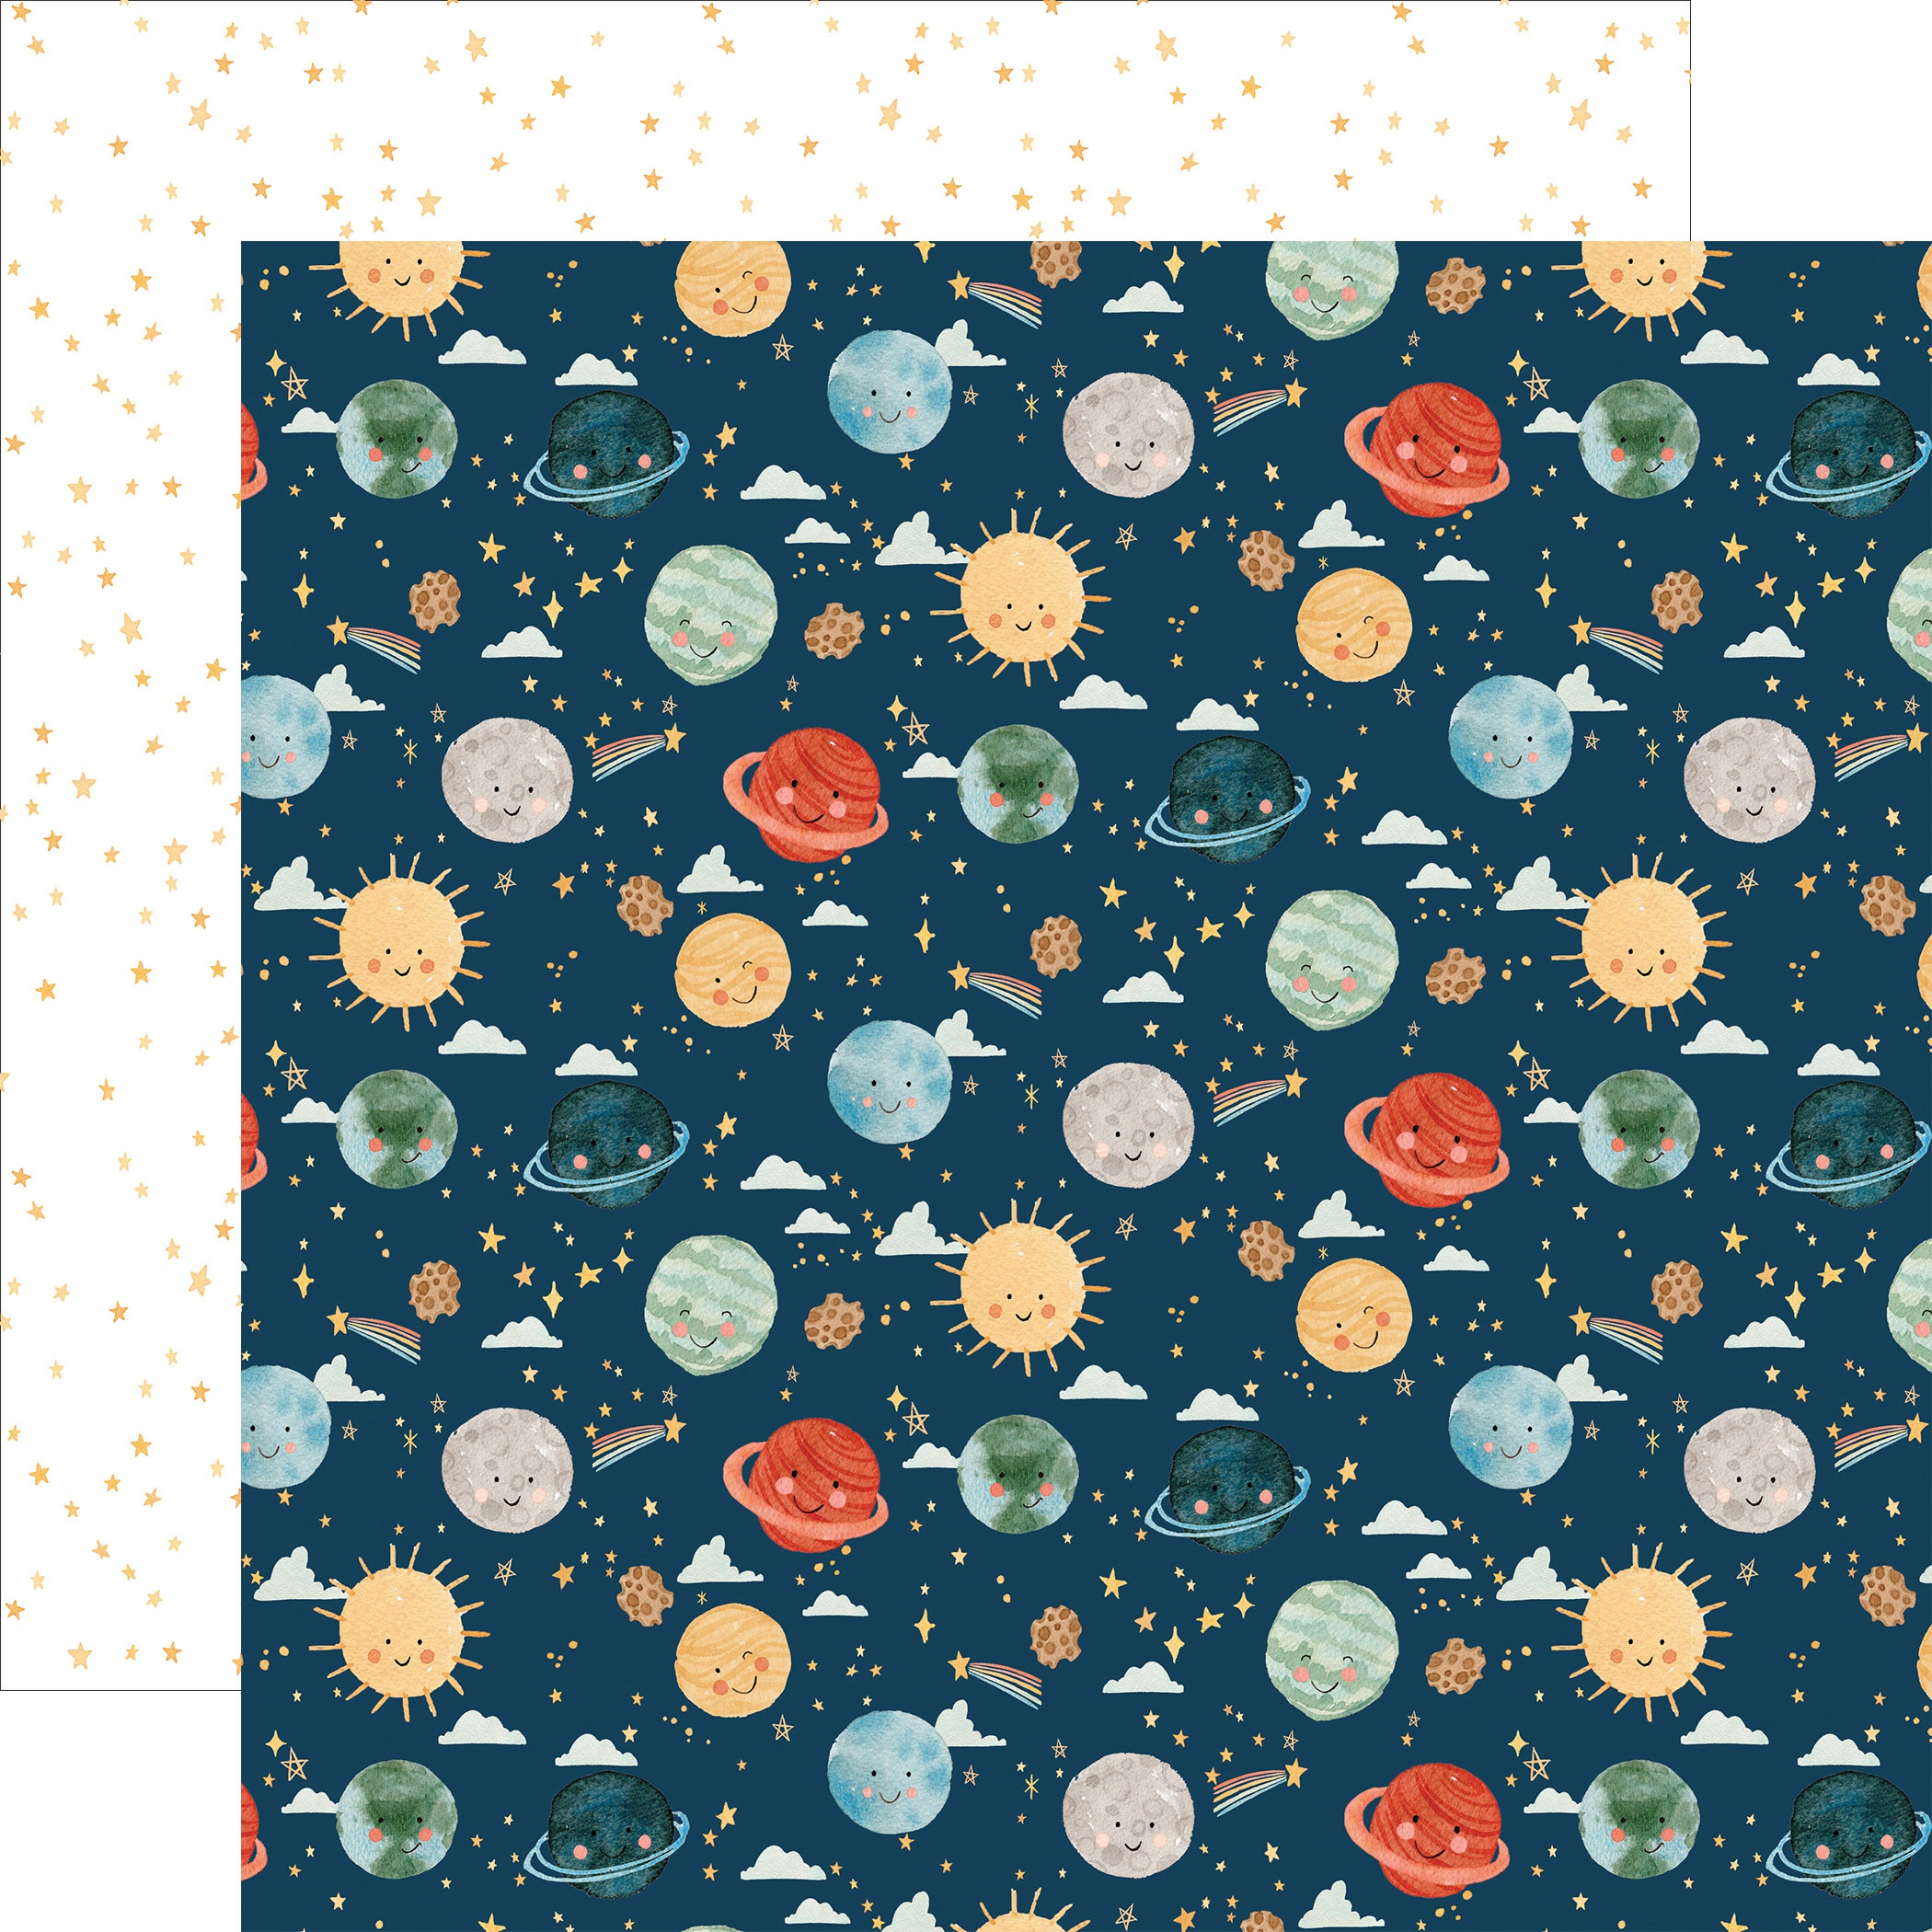 Echo Park - Welcome Baby Boy - PLANETS - 12x12 Double-Sided Paper